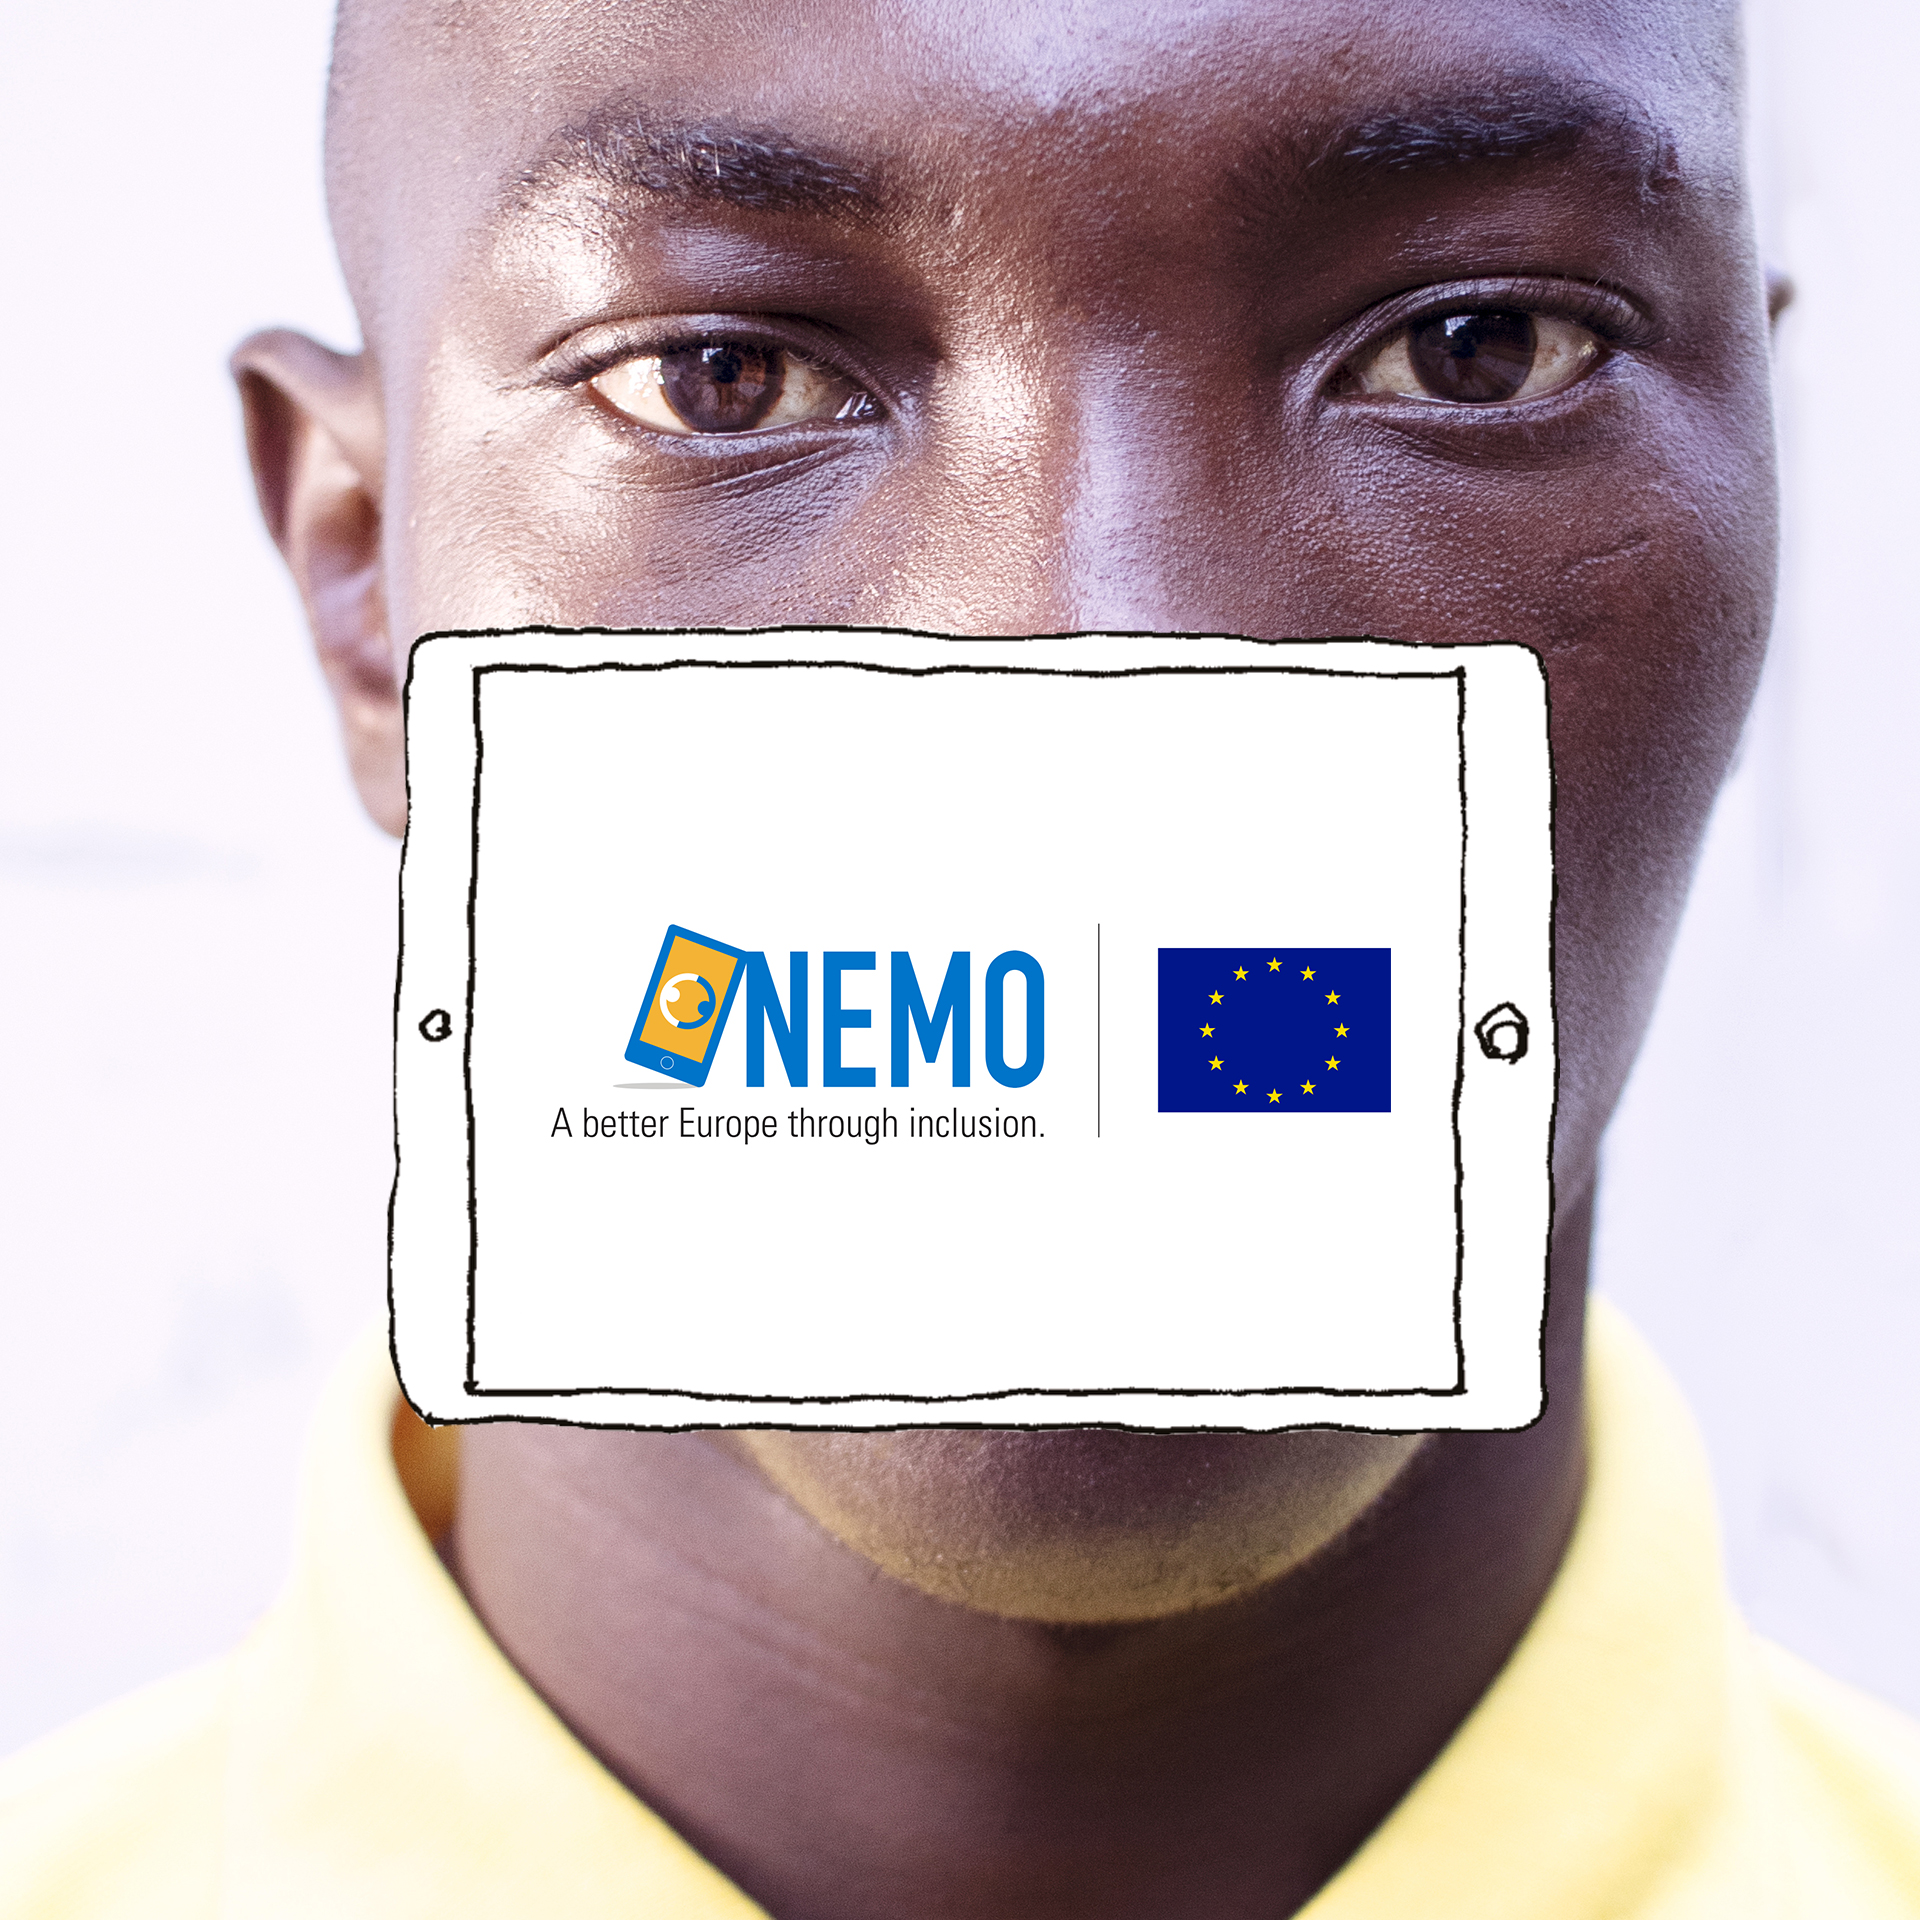 NEMO – A better Europe through inclusion